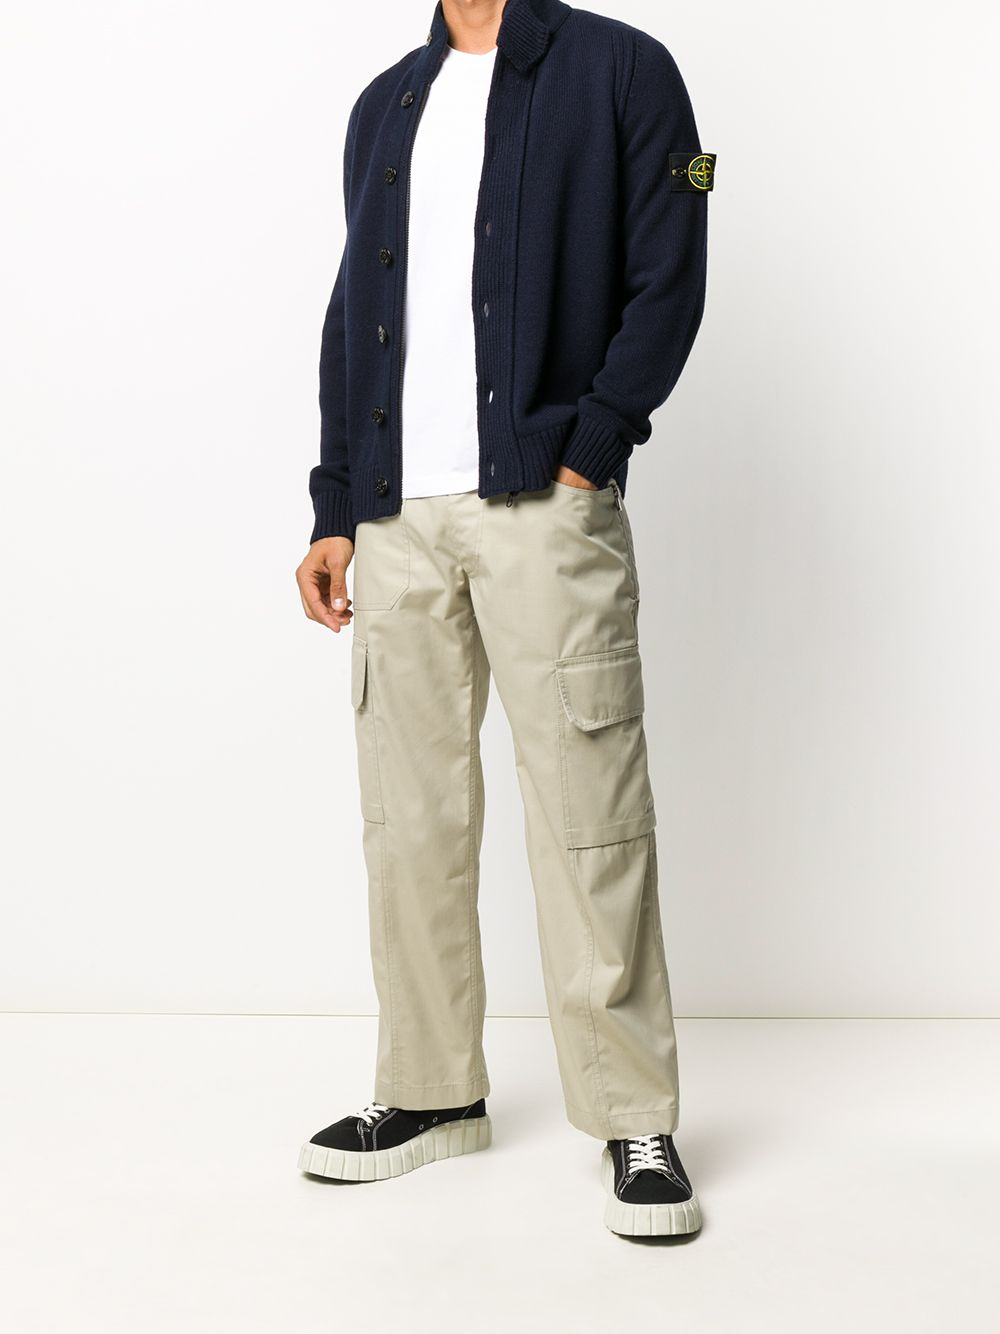 Navy wool blend button-down cardigan featuring Stone Island logo patch to the side STONE ISLAND |  | 7315564A3V0020